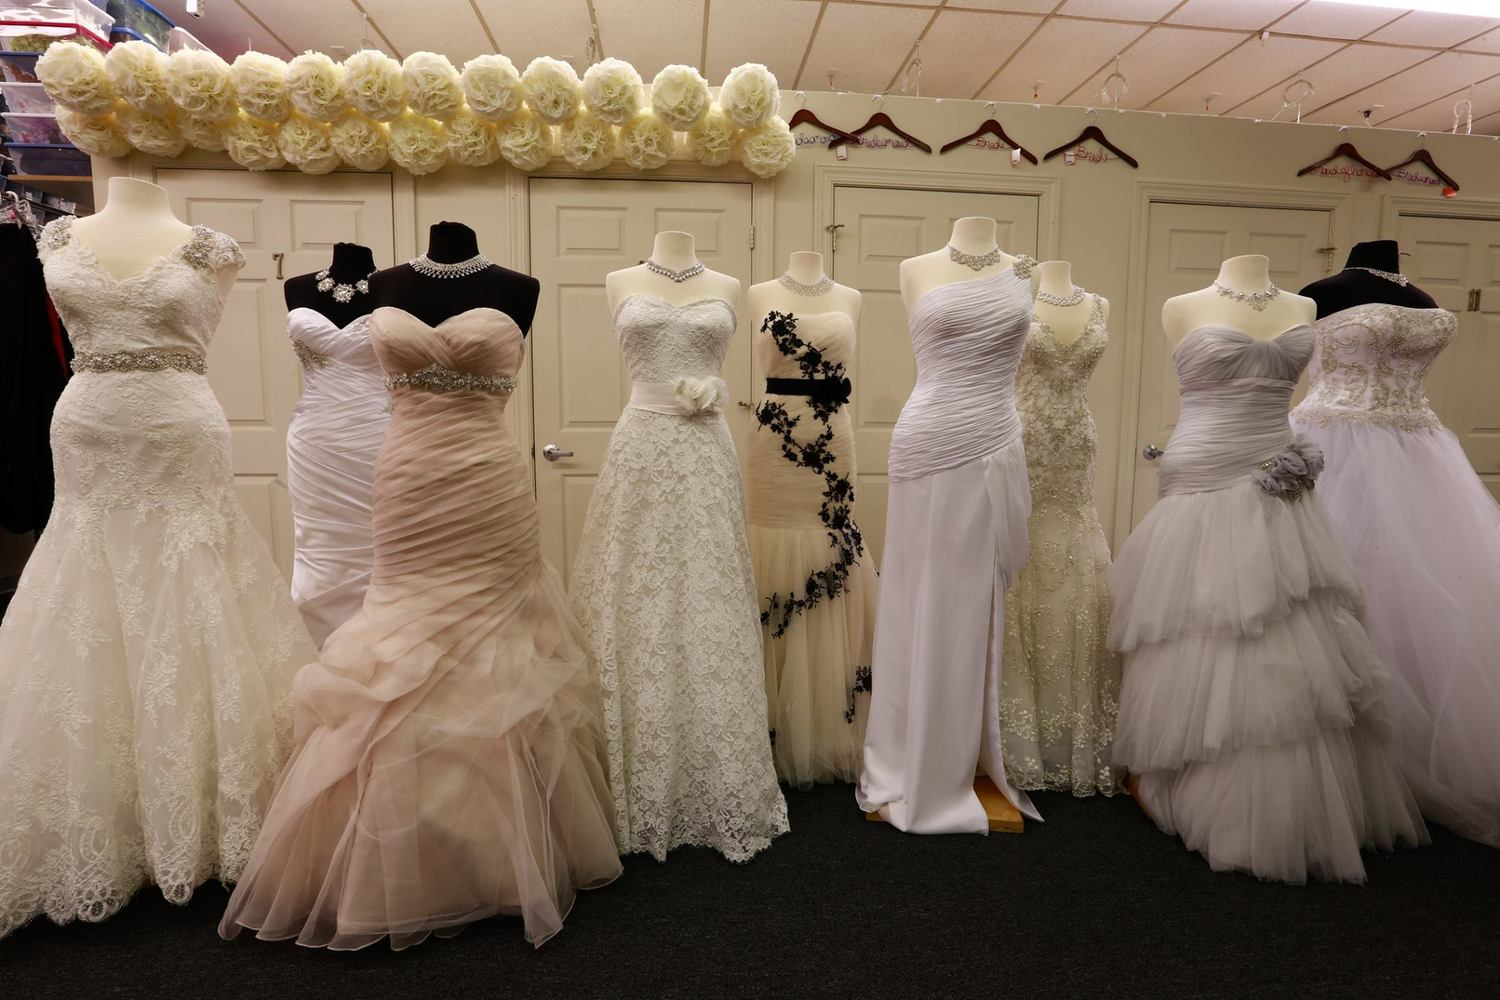 Gallery — Bride To Be Consignment